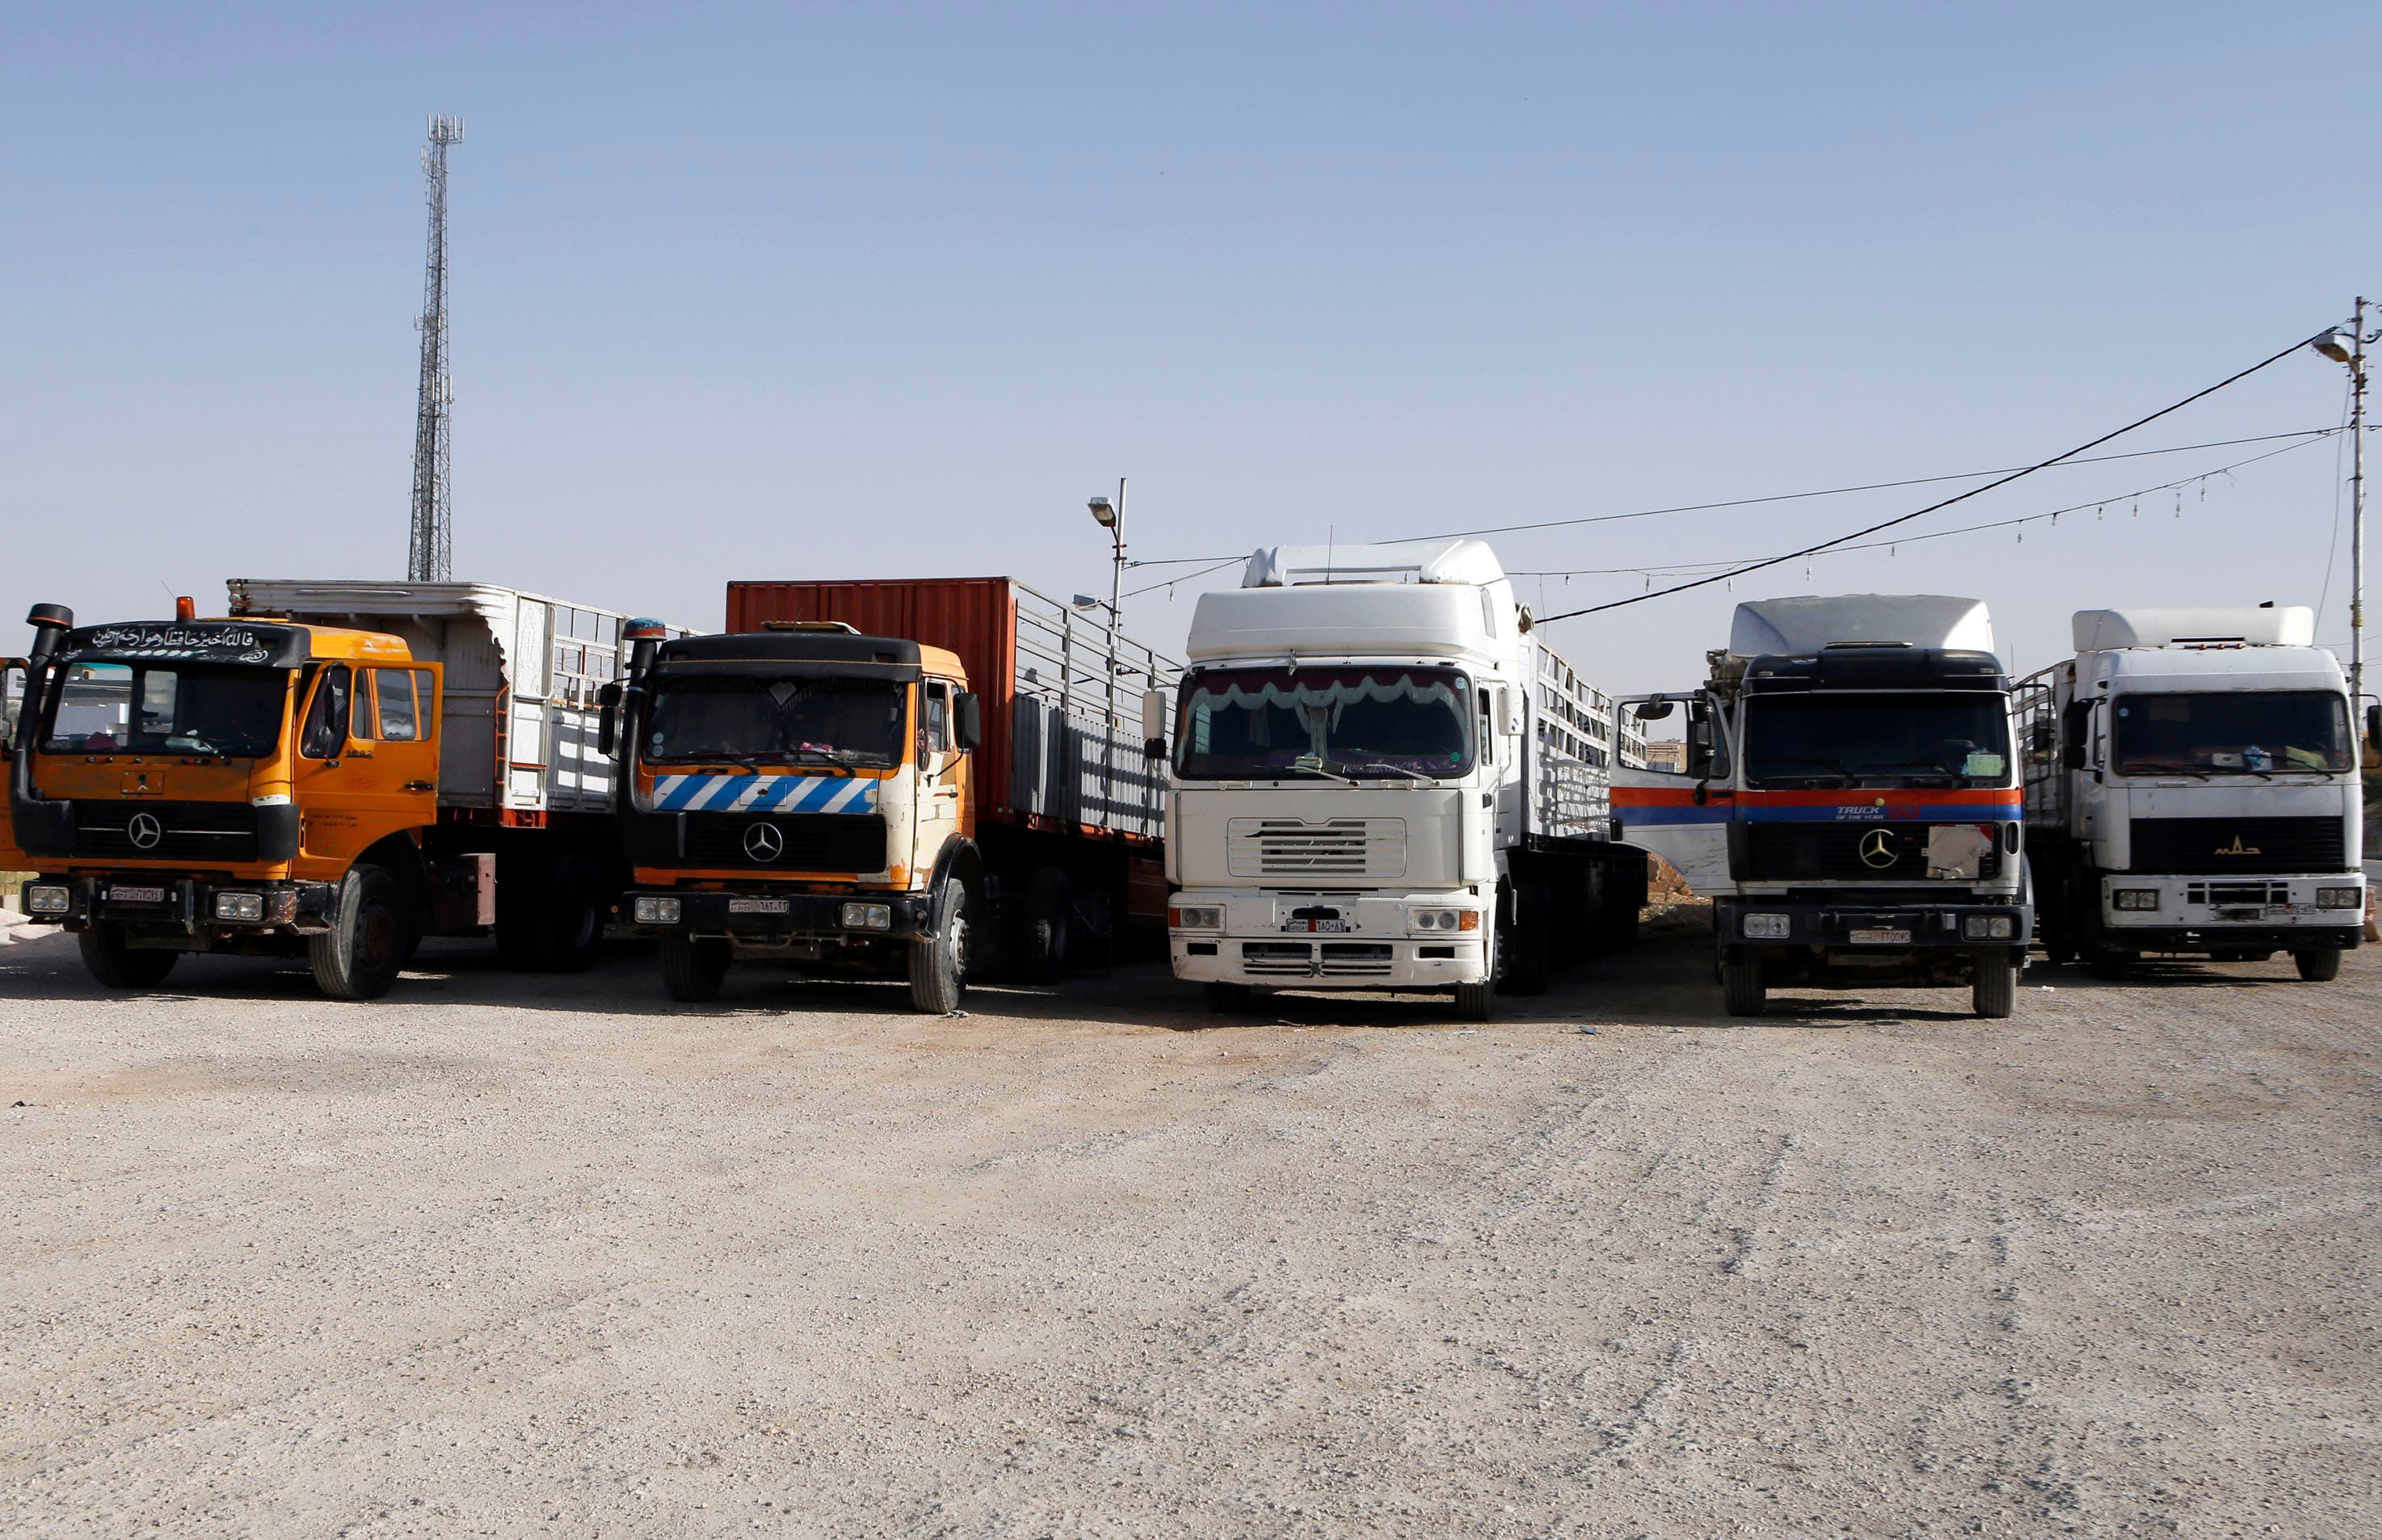 In this picture taken on Sunday, April 26, 2015, Jordanian trailer trucks sit idle at Jaber border crossing between Jordan and Syria north of Mafraq, Jordan. Jordan's overland trade has largely been paralyzed by recent border attacks from insurgents in neighboring Syria and Iraq - a spillover of regional turmoil threatening a close Western ally that has thus far succeeded in fending off Islamic militants. (AP Photo/Raad Adayleh)